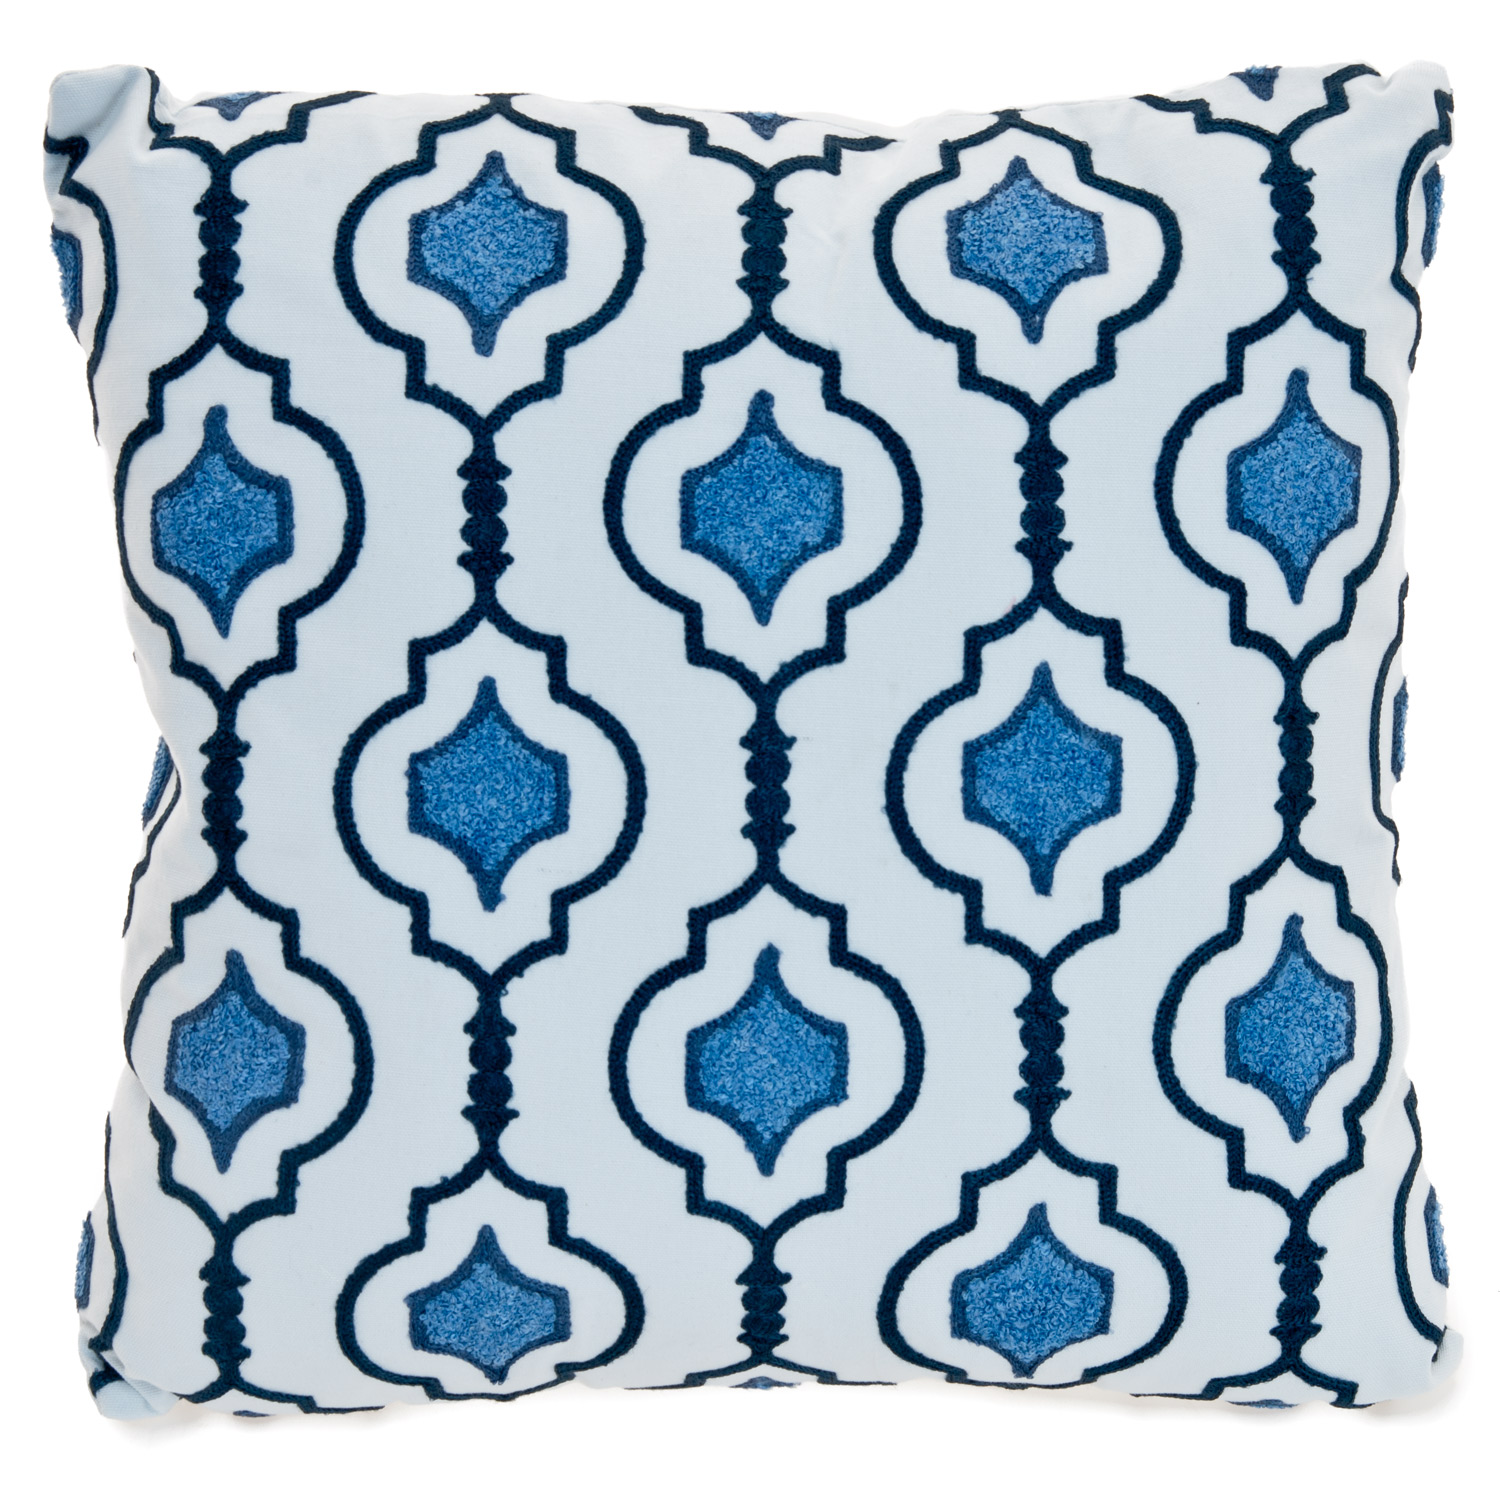 Image of Casa Moroccan Nights Cushion, Blue